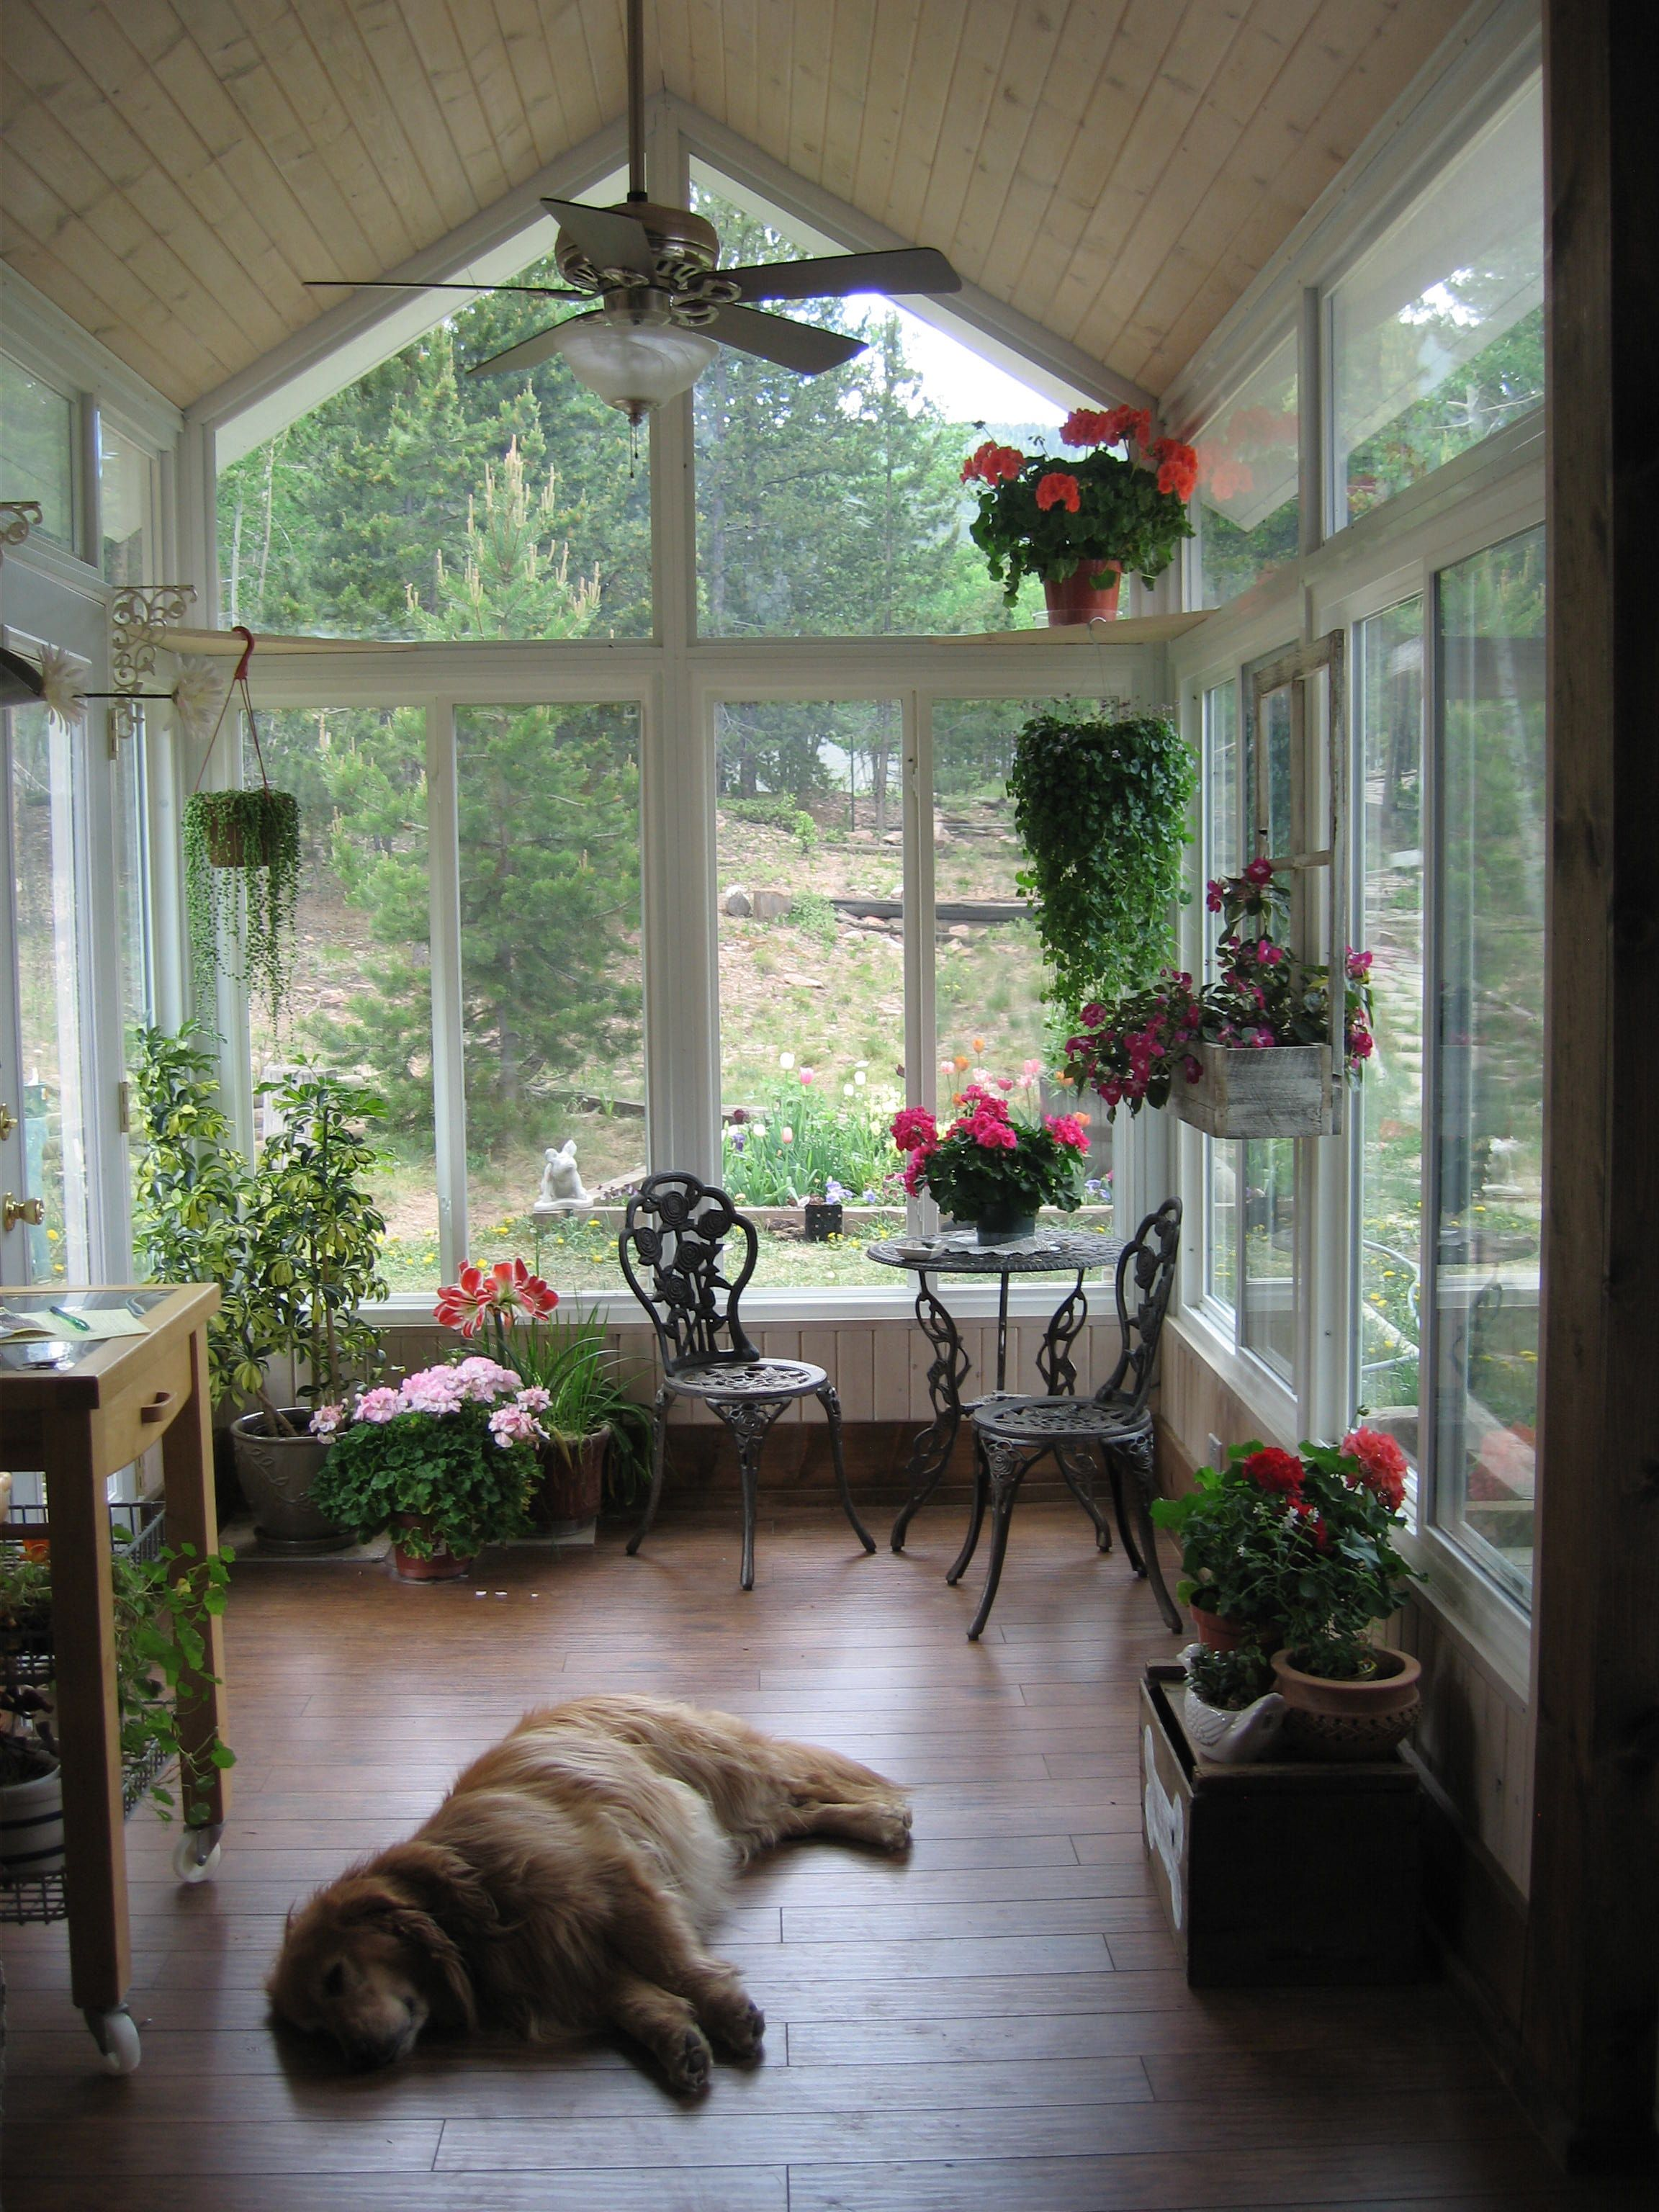 Window ideas for a sunroom  fabulous sunroom interior designs with wooden floor and green plant